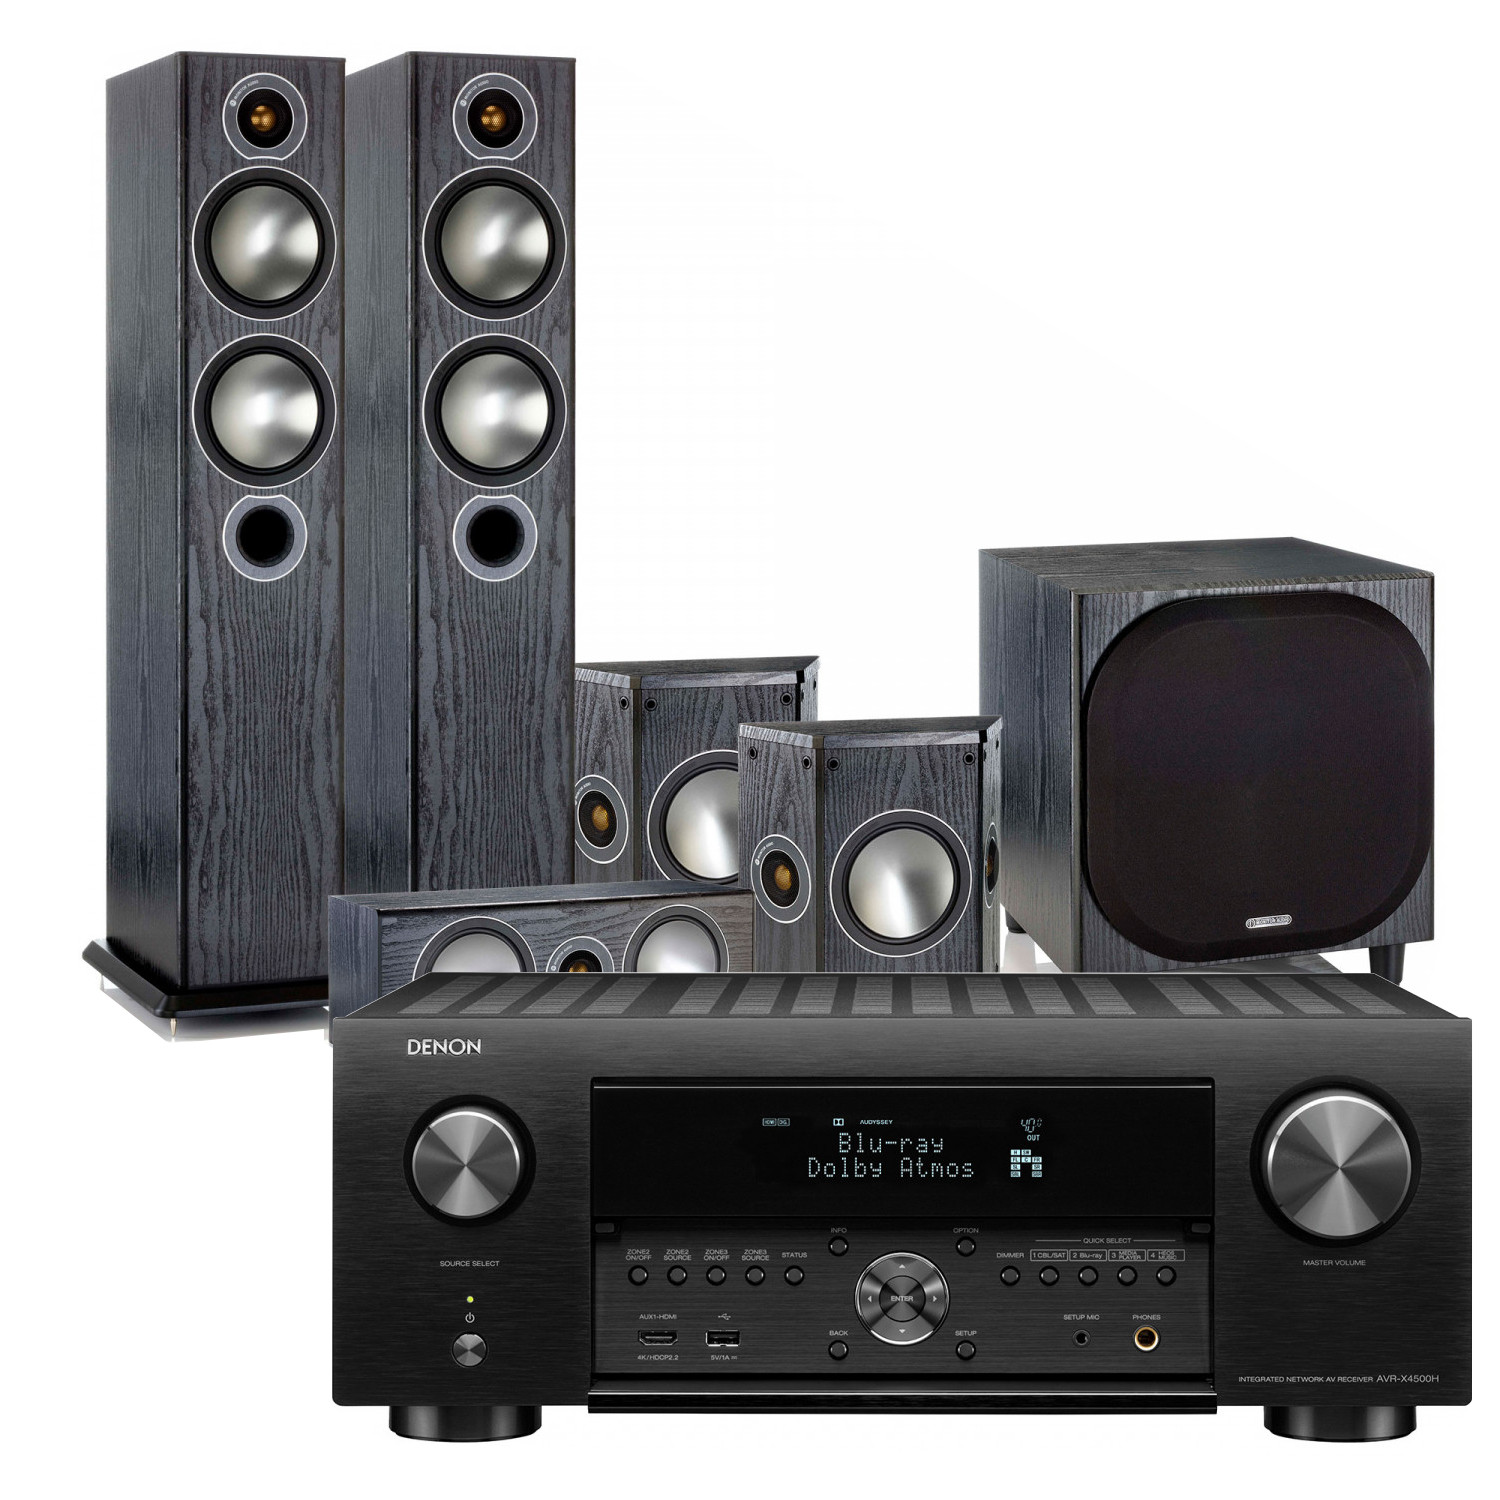 Denon AVR-X4500H 9 2 Channel AV Receiver with Monitor Audio